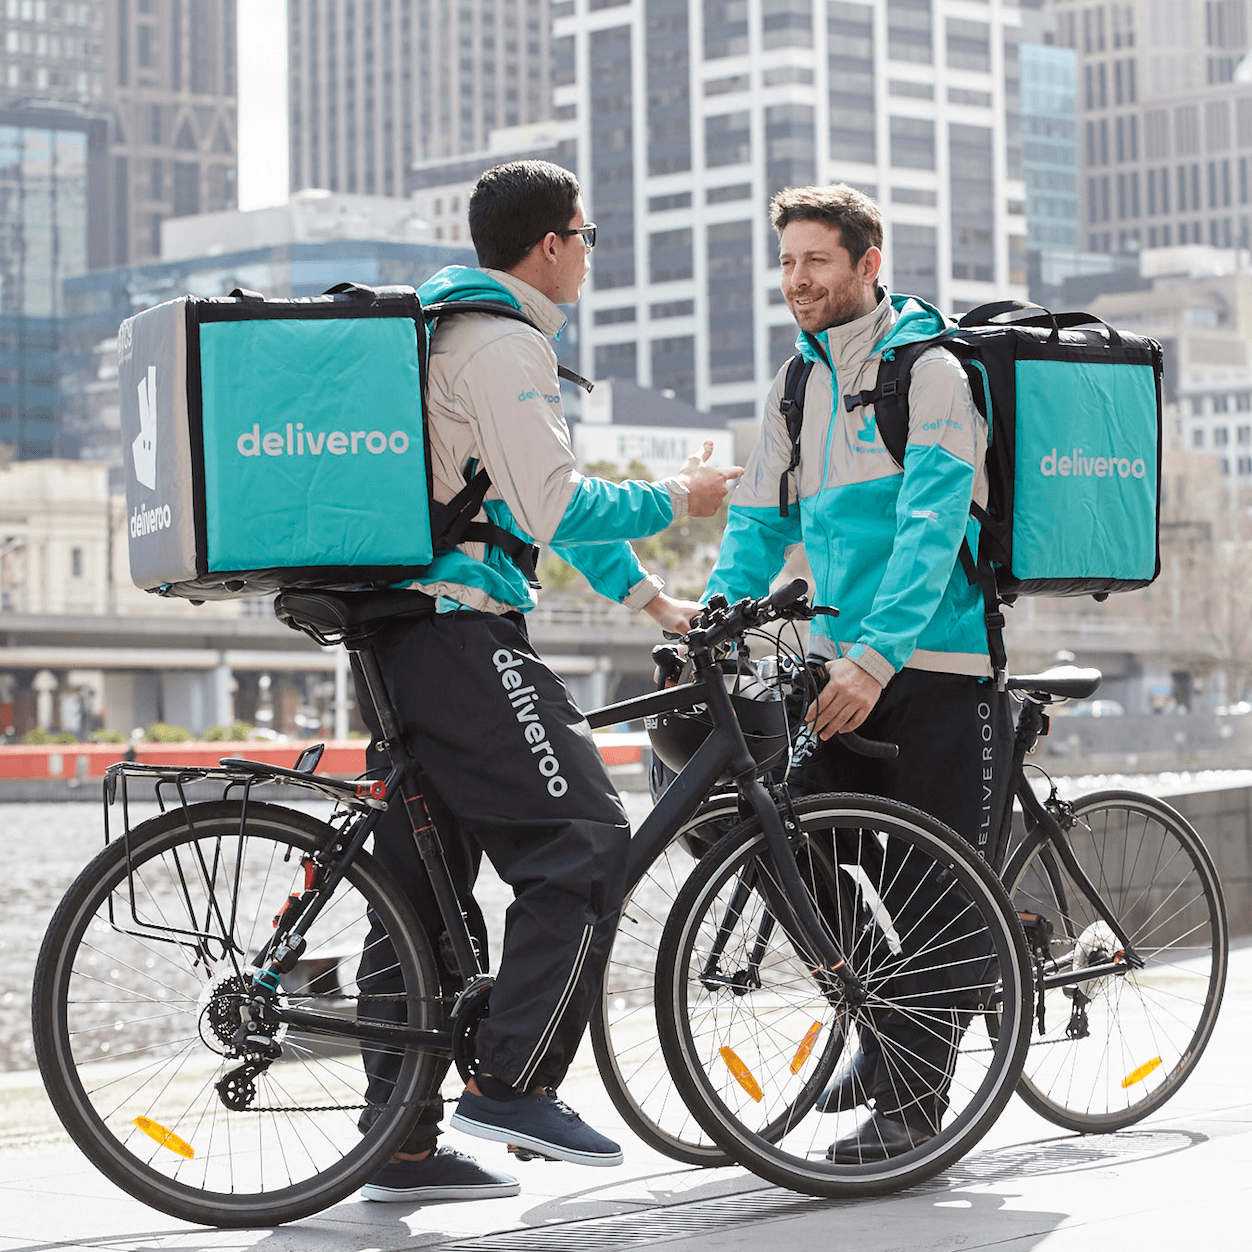 Online Food Delivery Shakeup: Deliveroo Launches Marketplace+